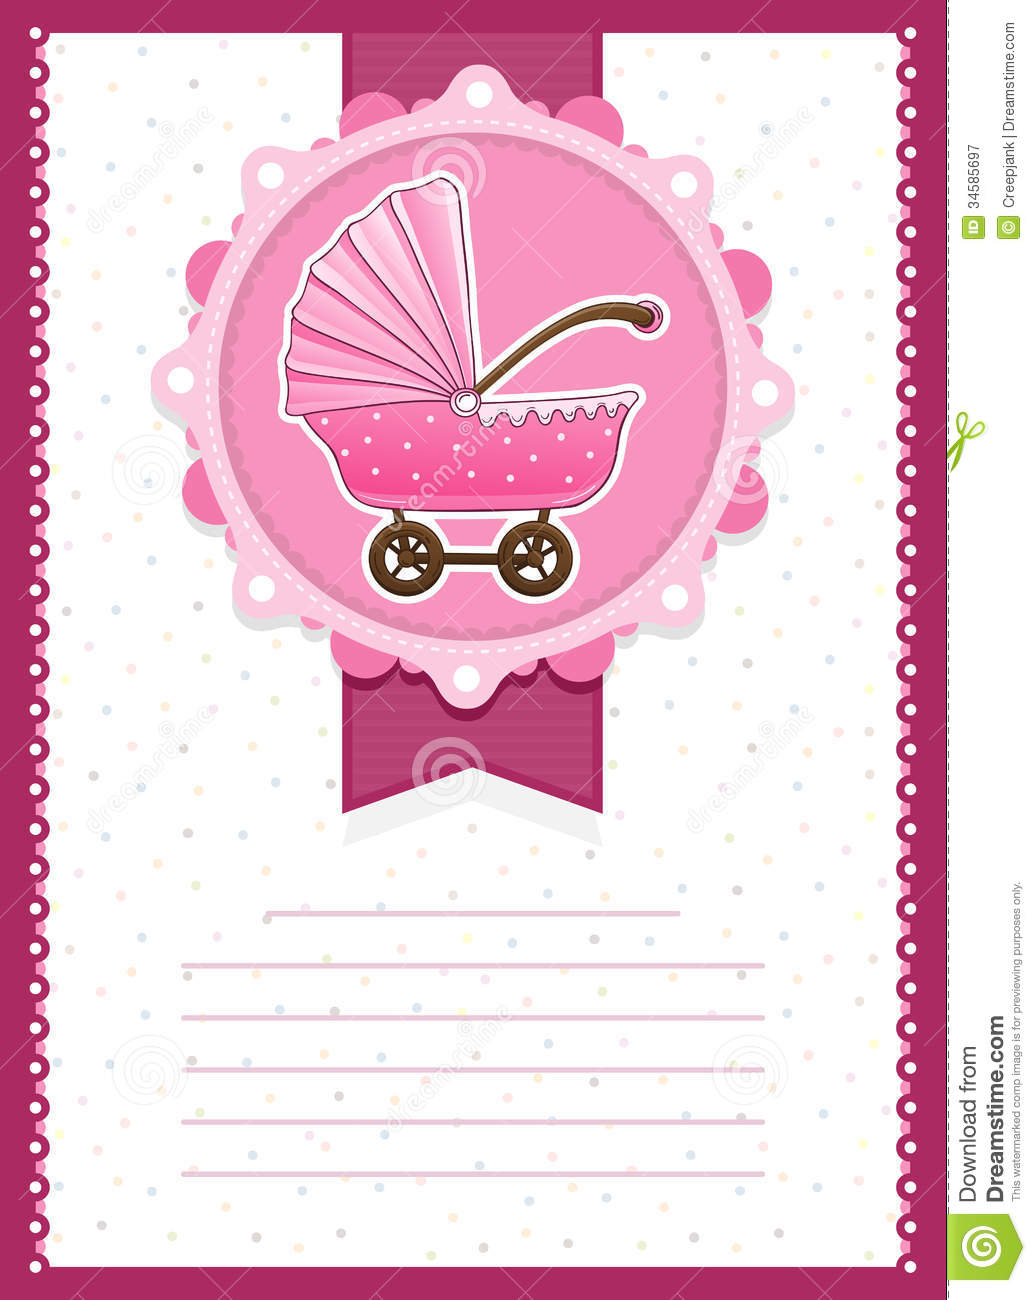 Baby Girl Stroller Invitation Card Royalty Free Stock